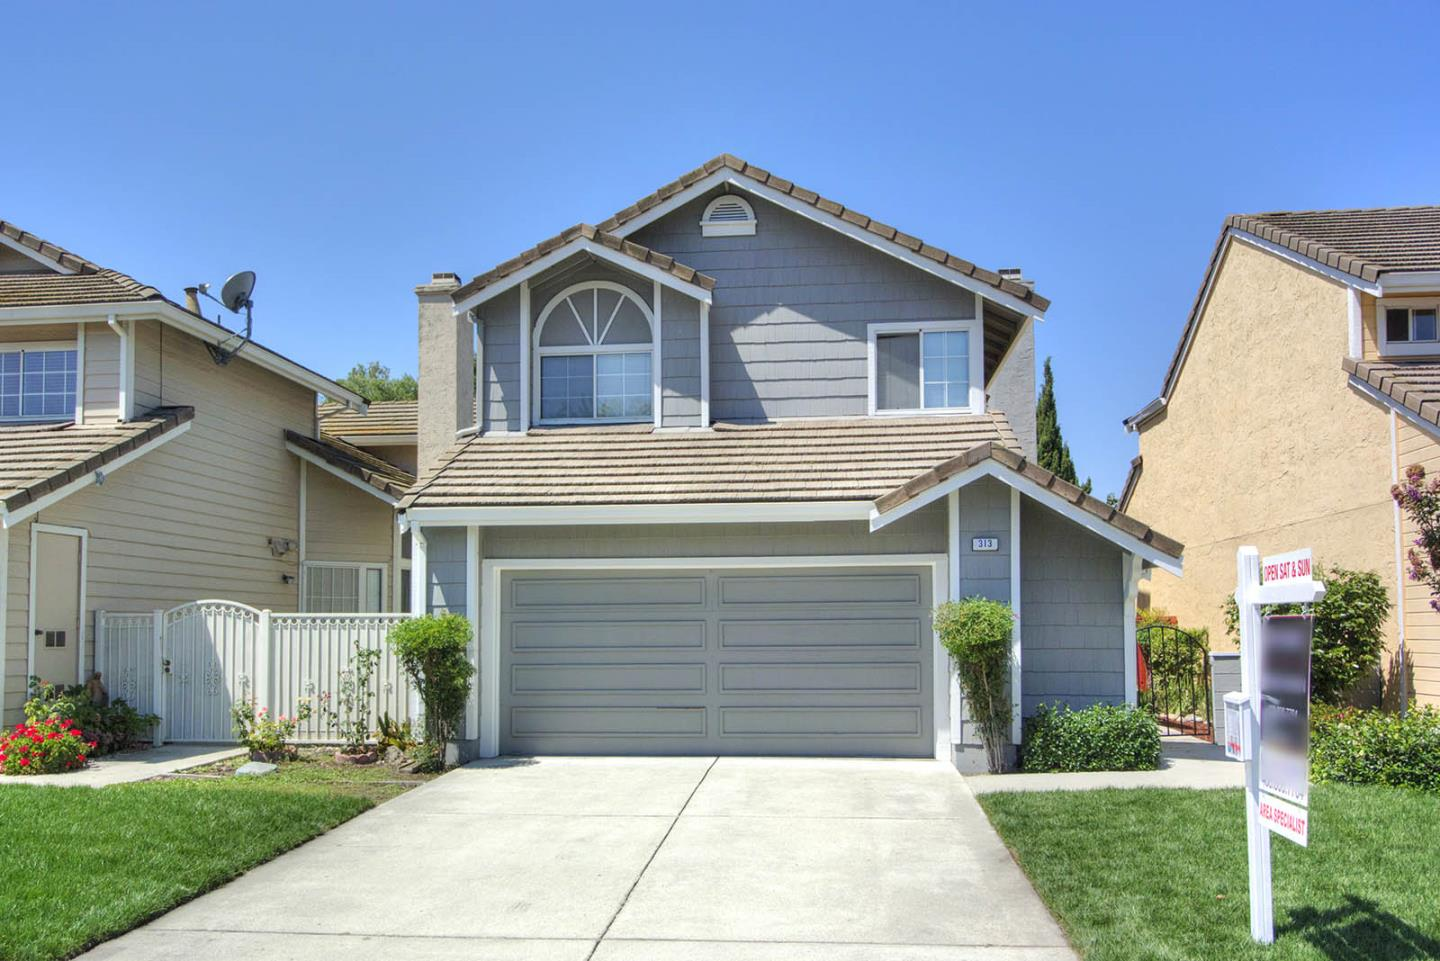 Detail Gallery Image 1 of 1 For 313 Moretti Ln, Milpitas, CA 95035 - 3 Beds | 2/1 Baths